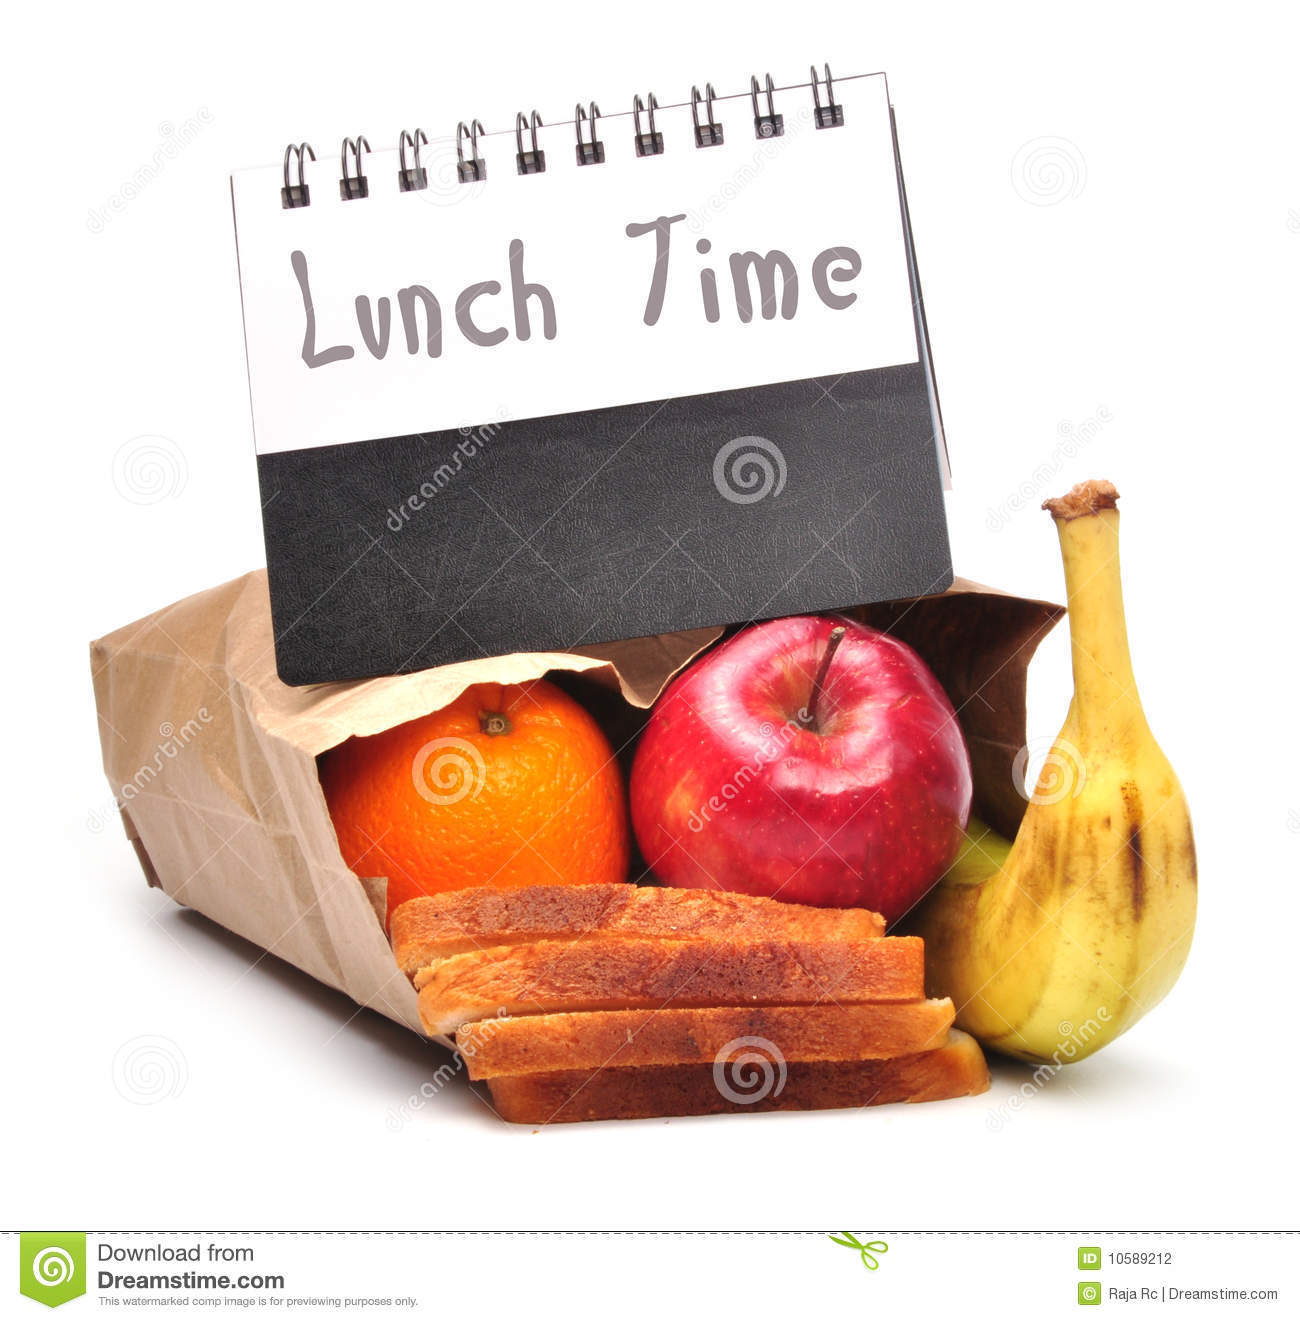 School lunch time concept - path added.